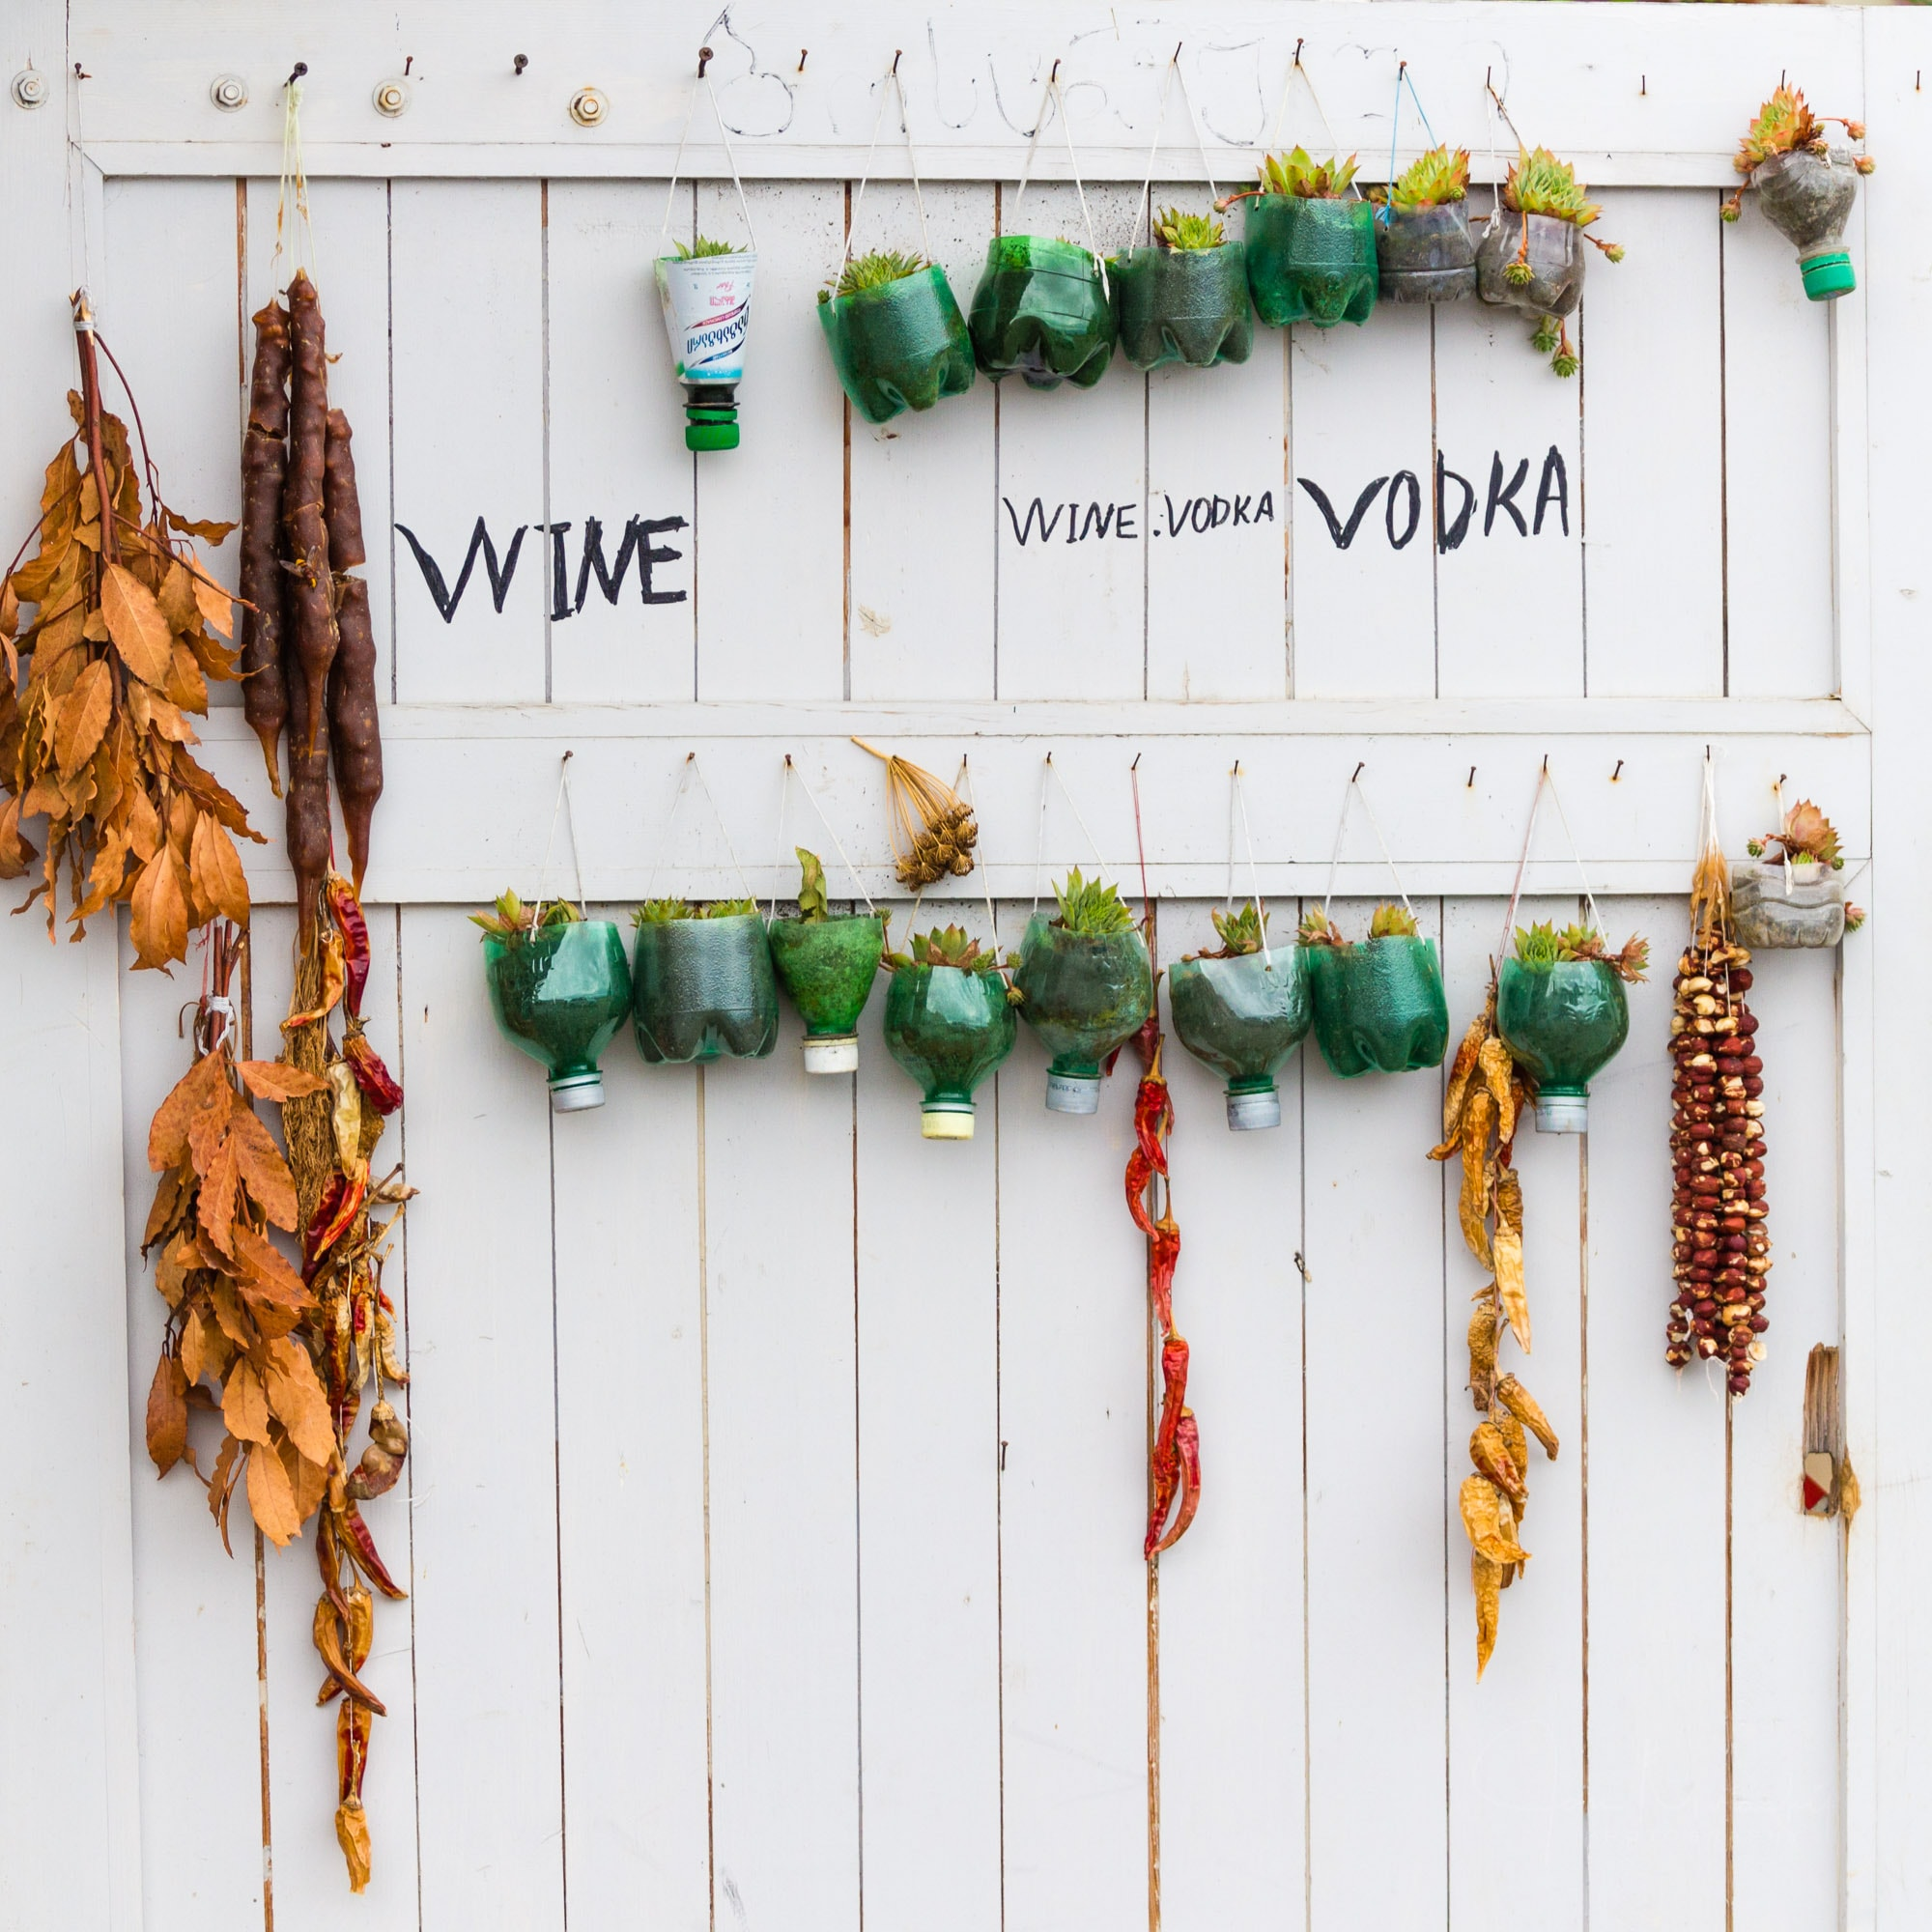 Wine and vodka wall decoration